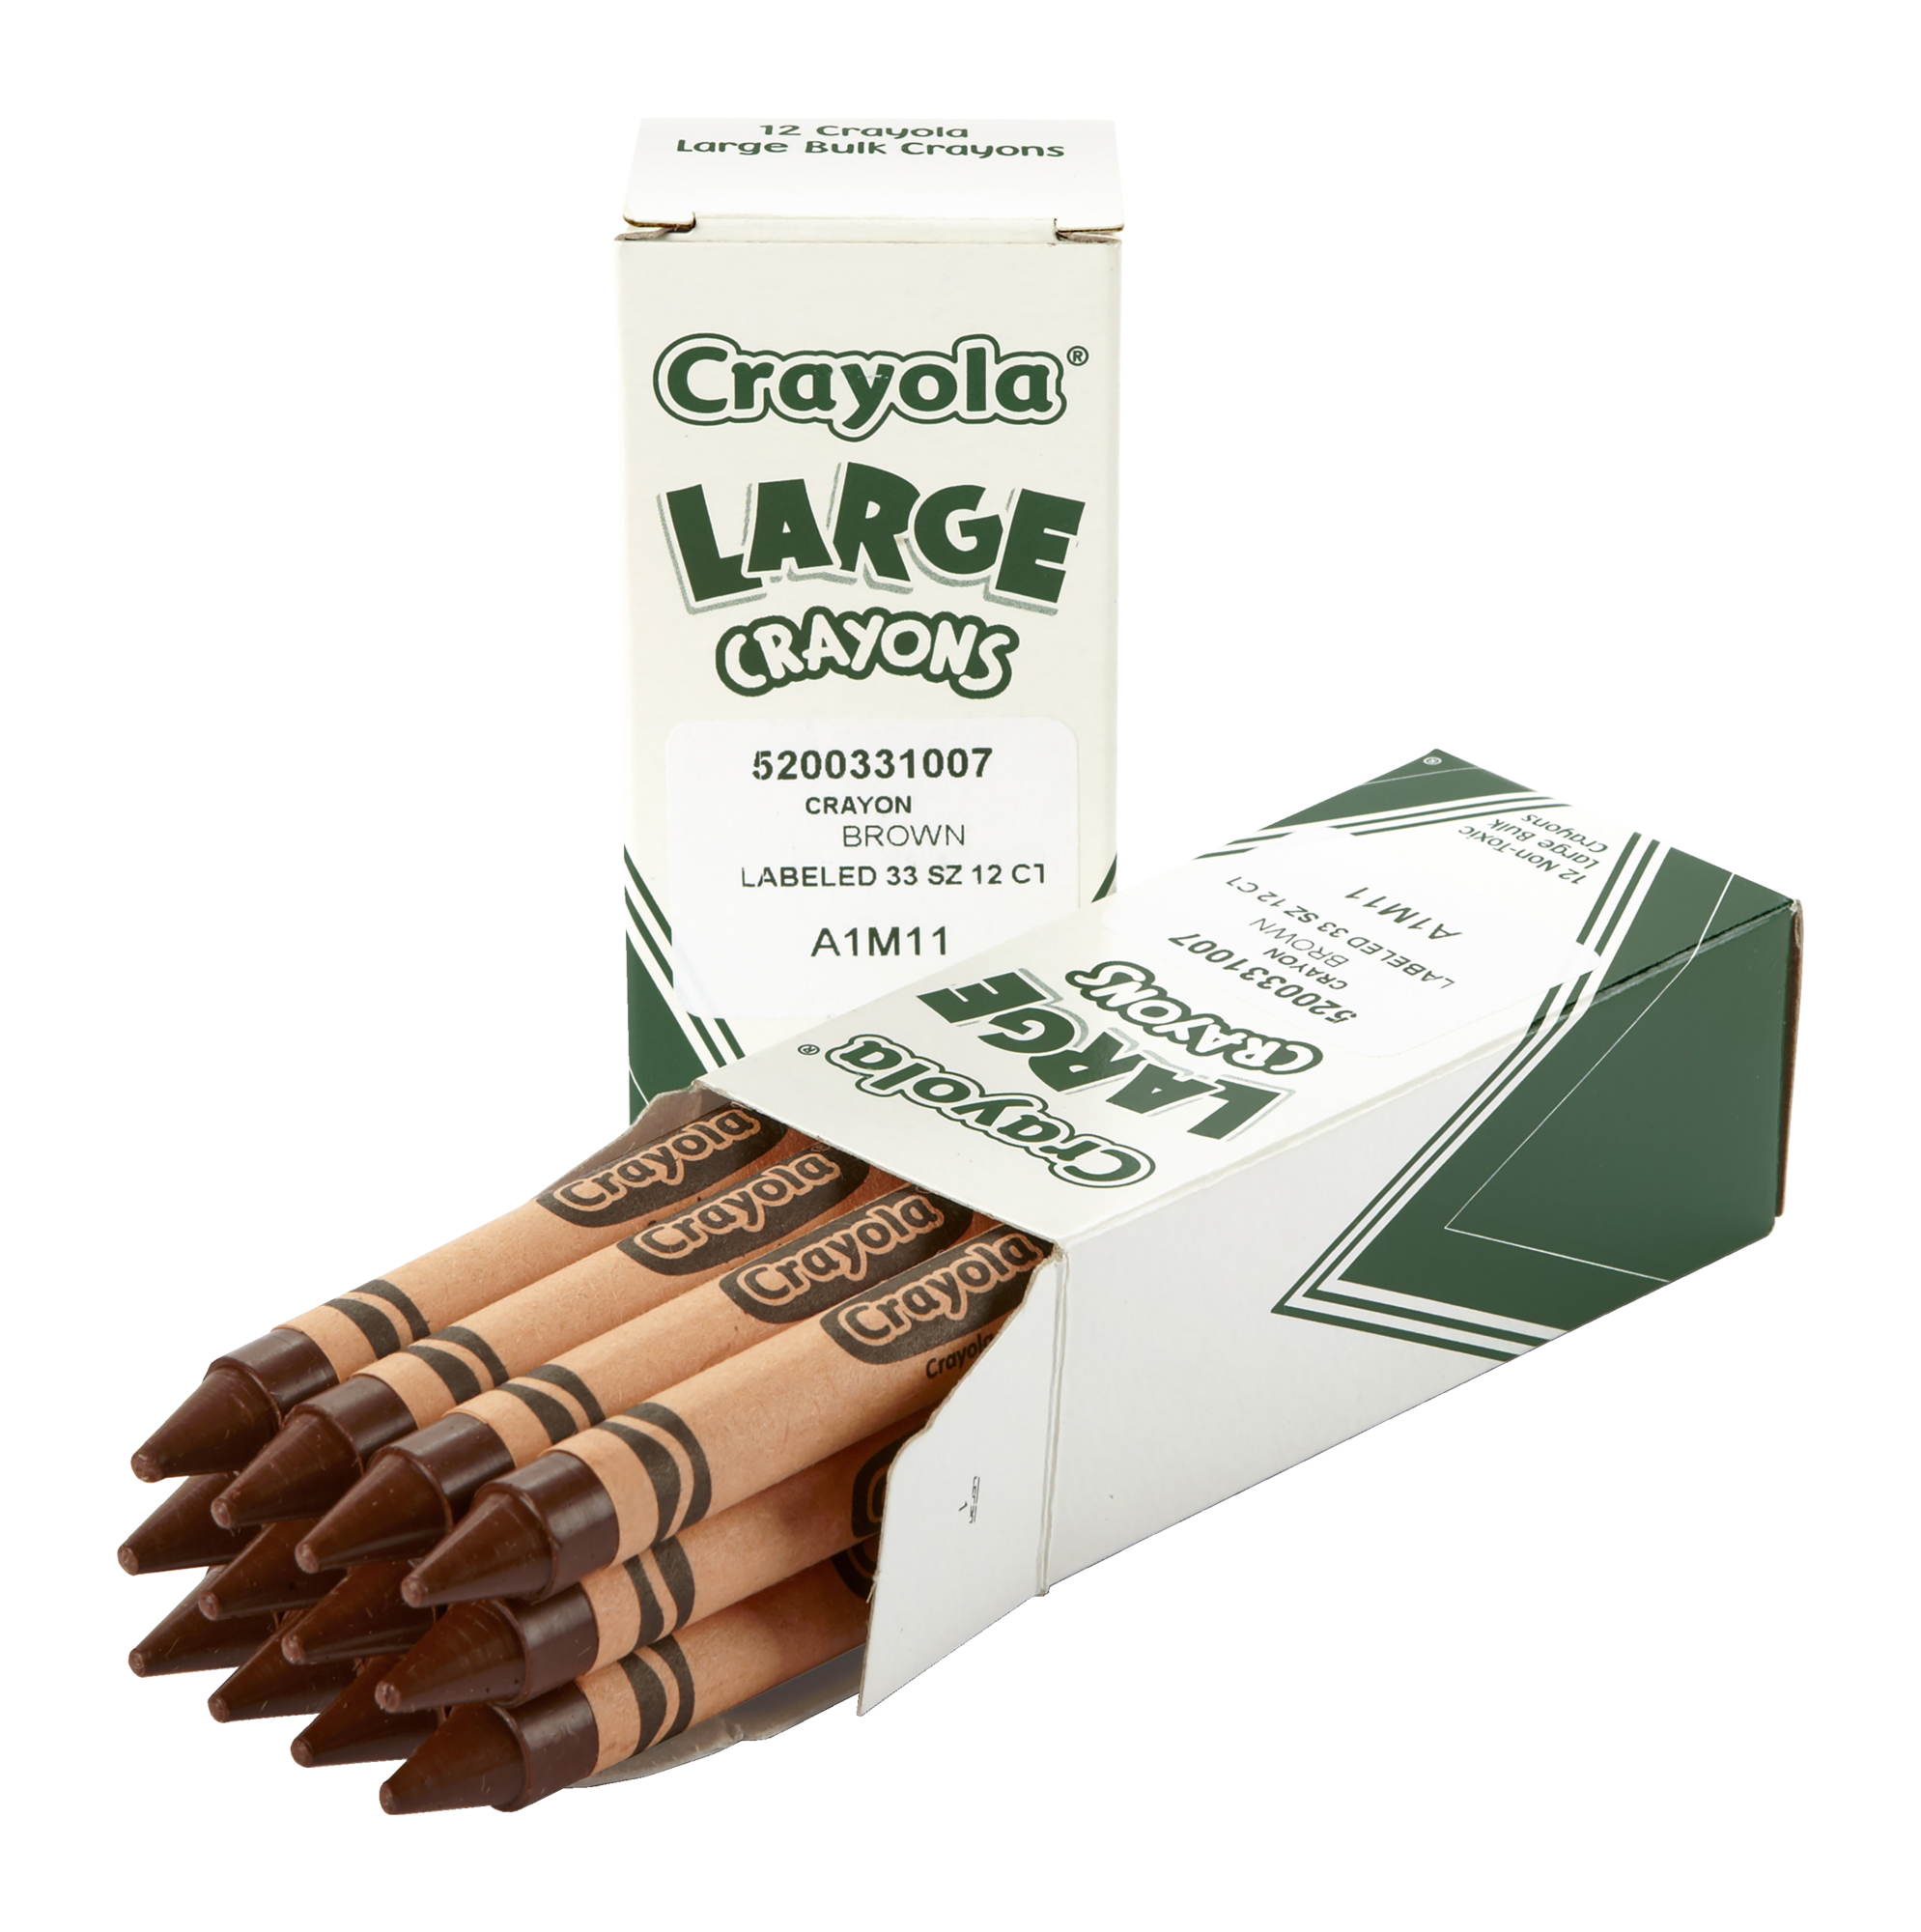 Crayola Large Non-Toxic Single Colors Crayon Refill, 7/16 X 4 In, Brown, 2